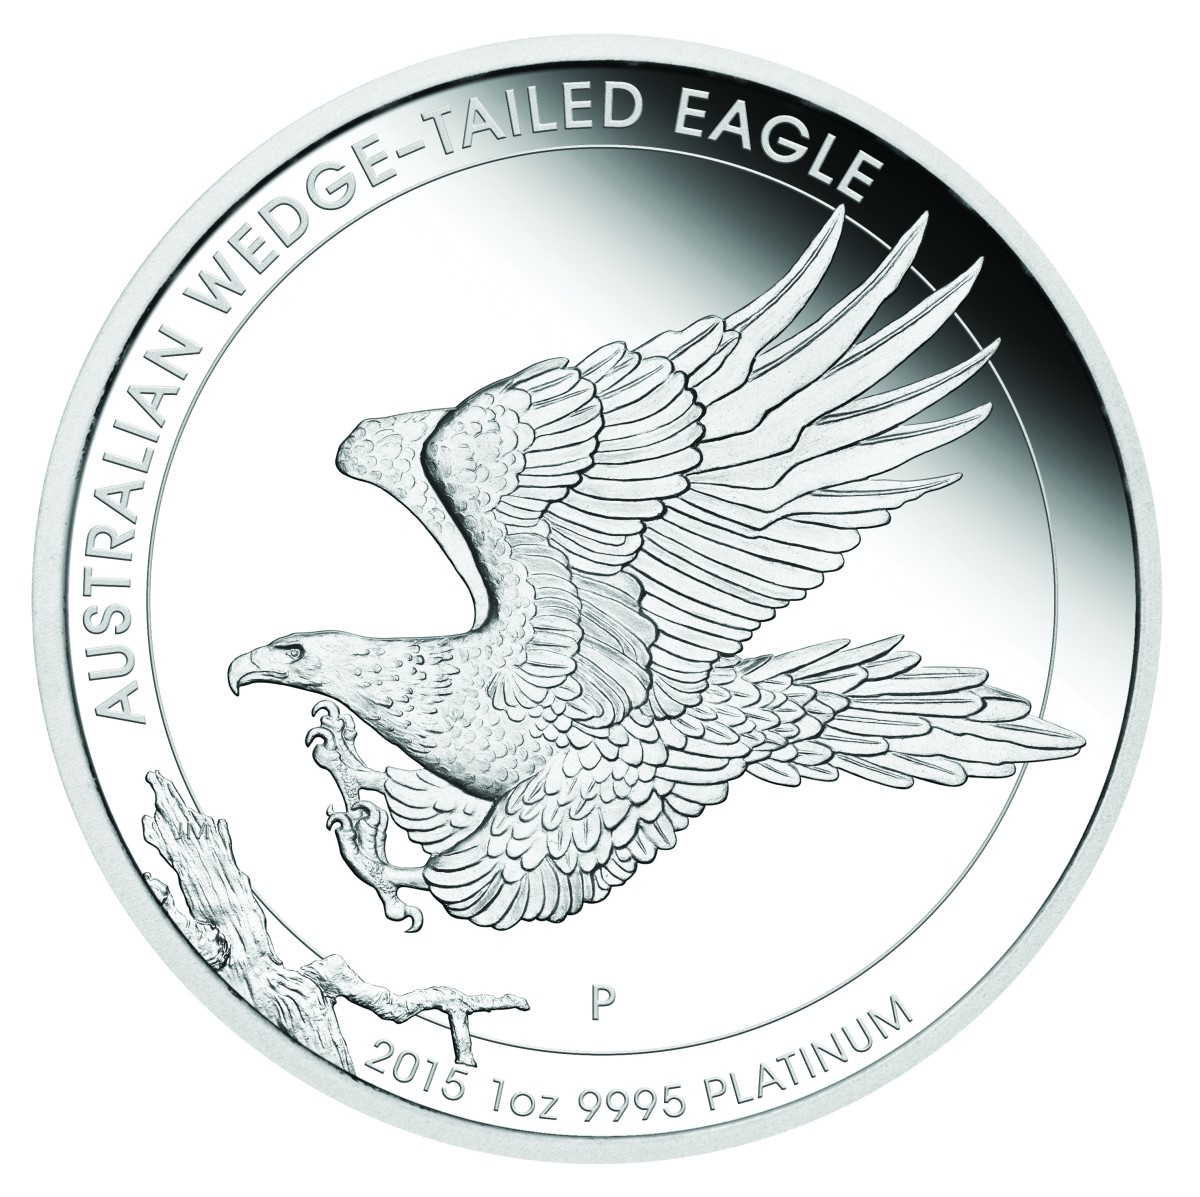 The one and only platinum Wedge-tailed Eagle coin - to date. Image courtesy The Perth Mint.